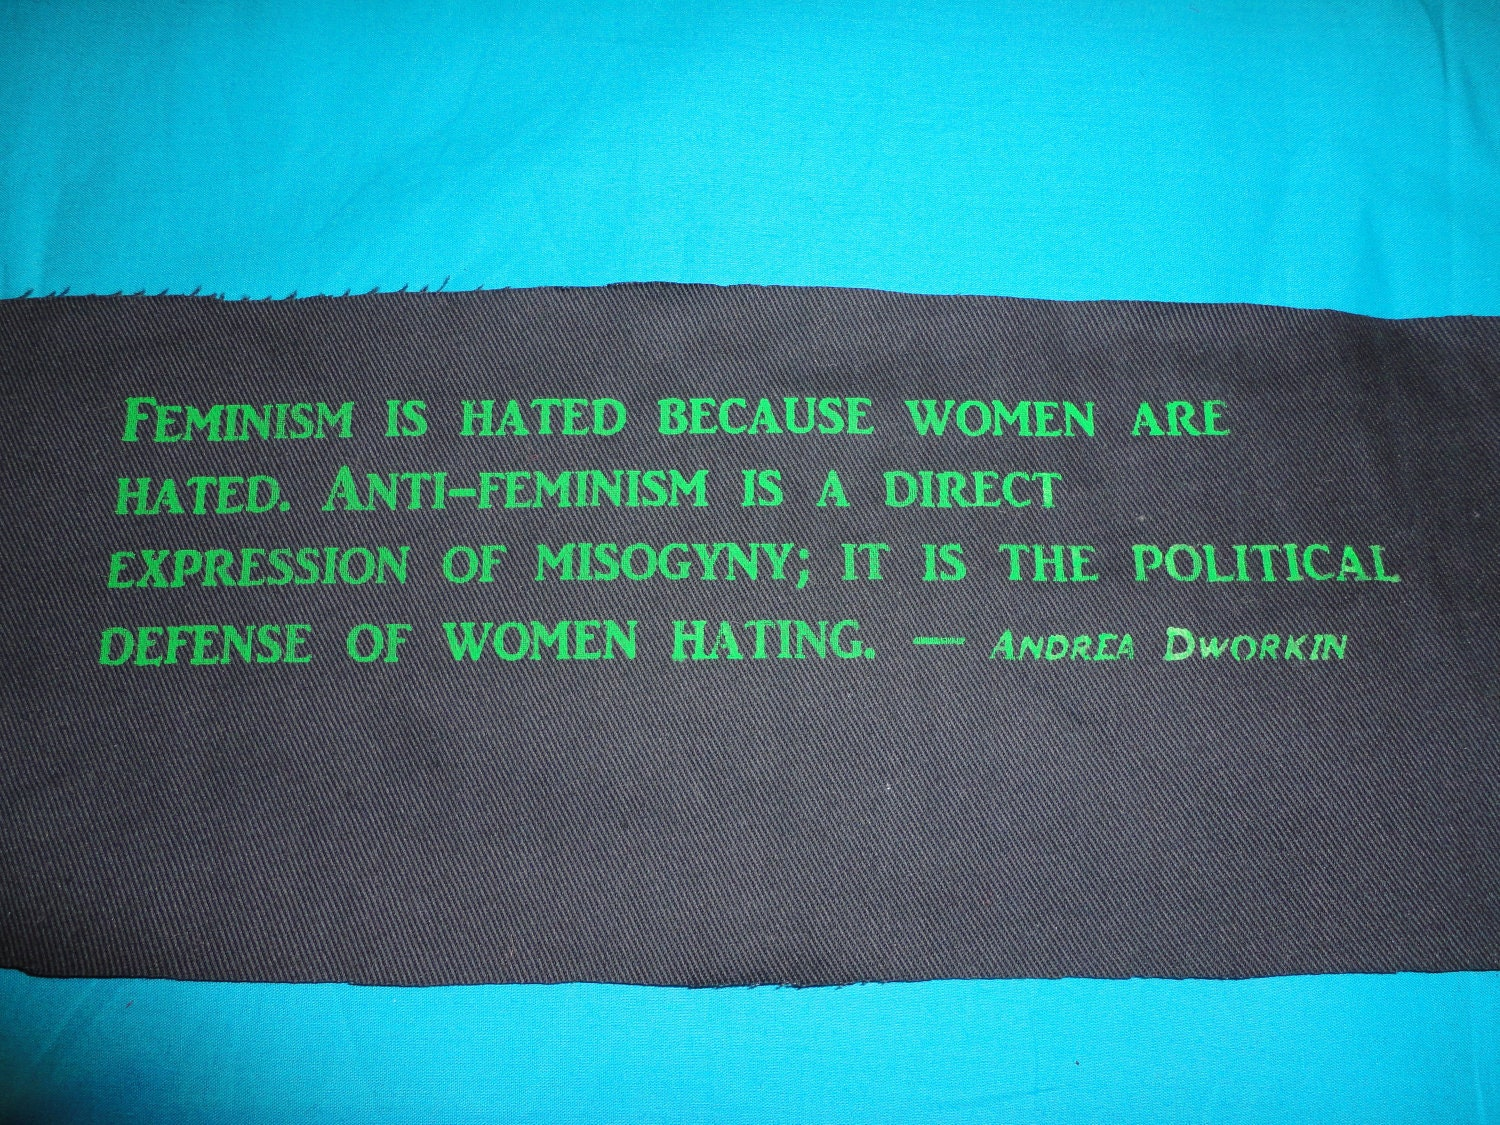 Feminist Political Patch -Feminism is hated because women are hated -Andrea Dworkin